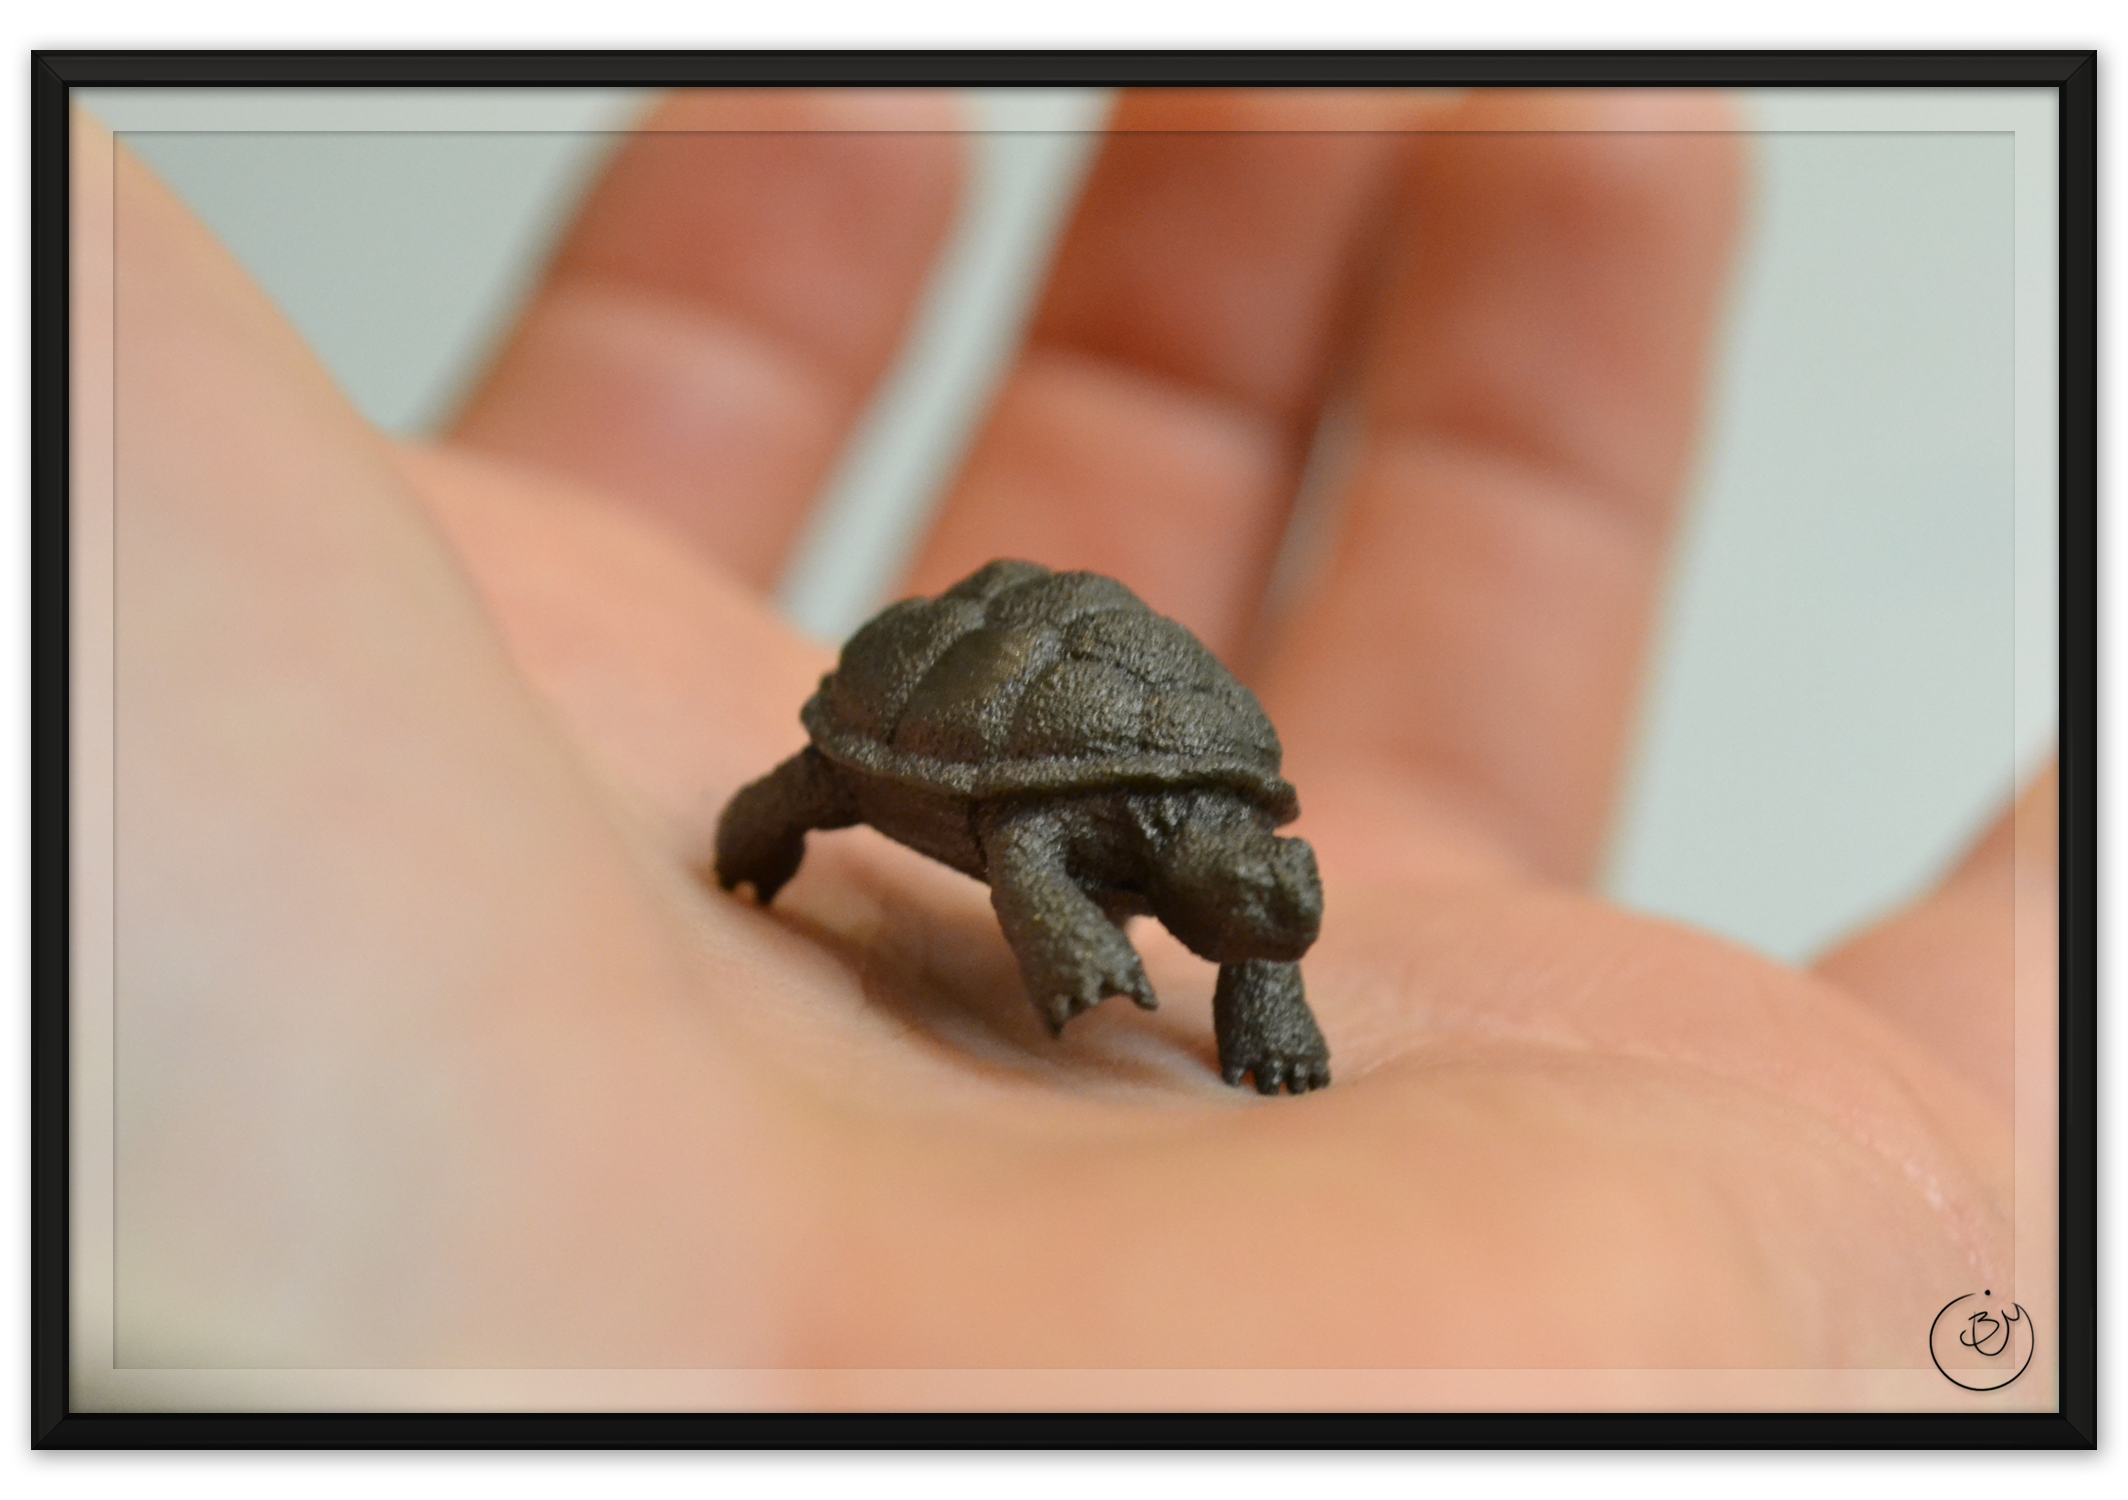 BenMiller_Turtle-Palm-1500px.png